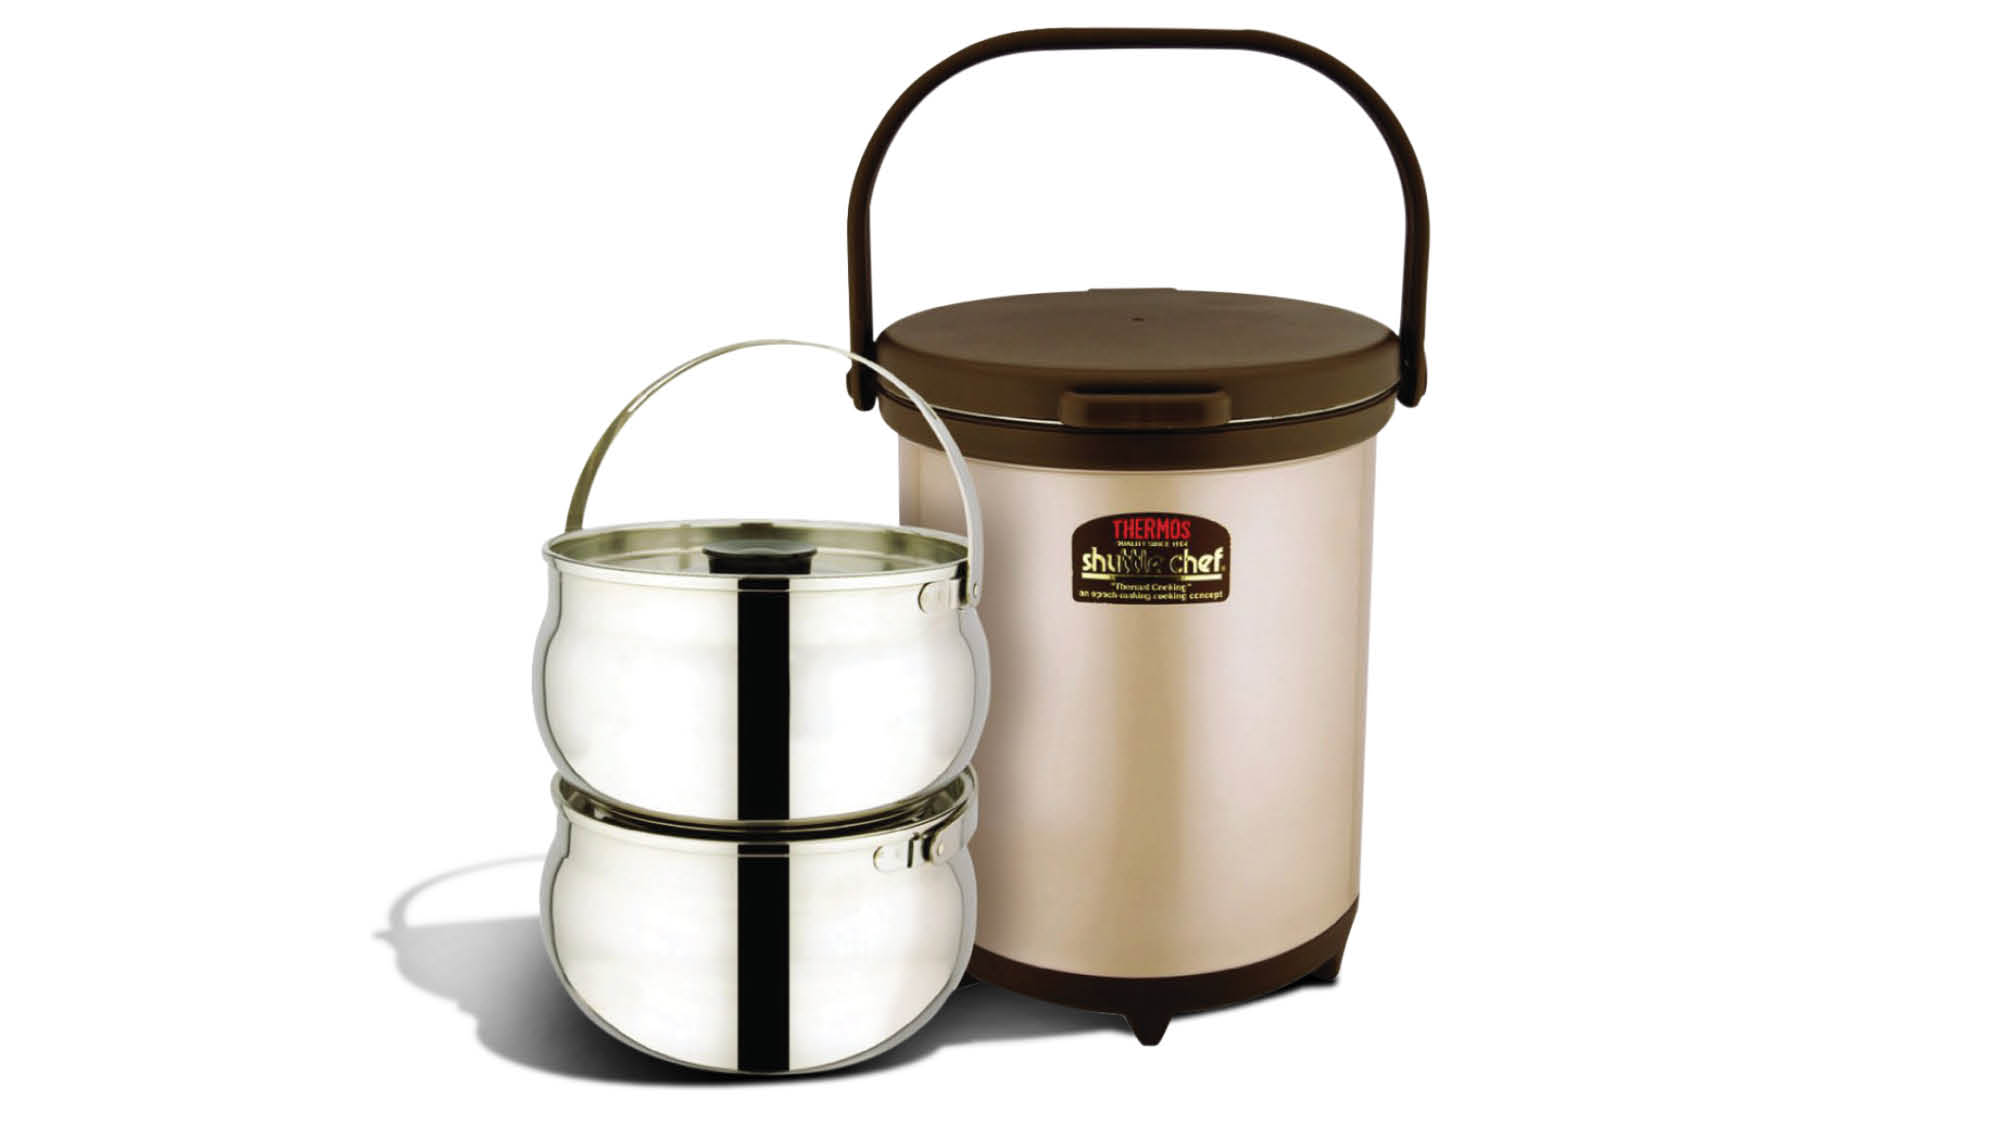 Thermal Cookware Thermos Shuttle Chef